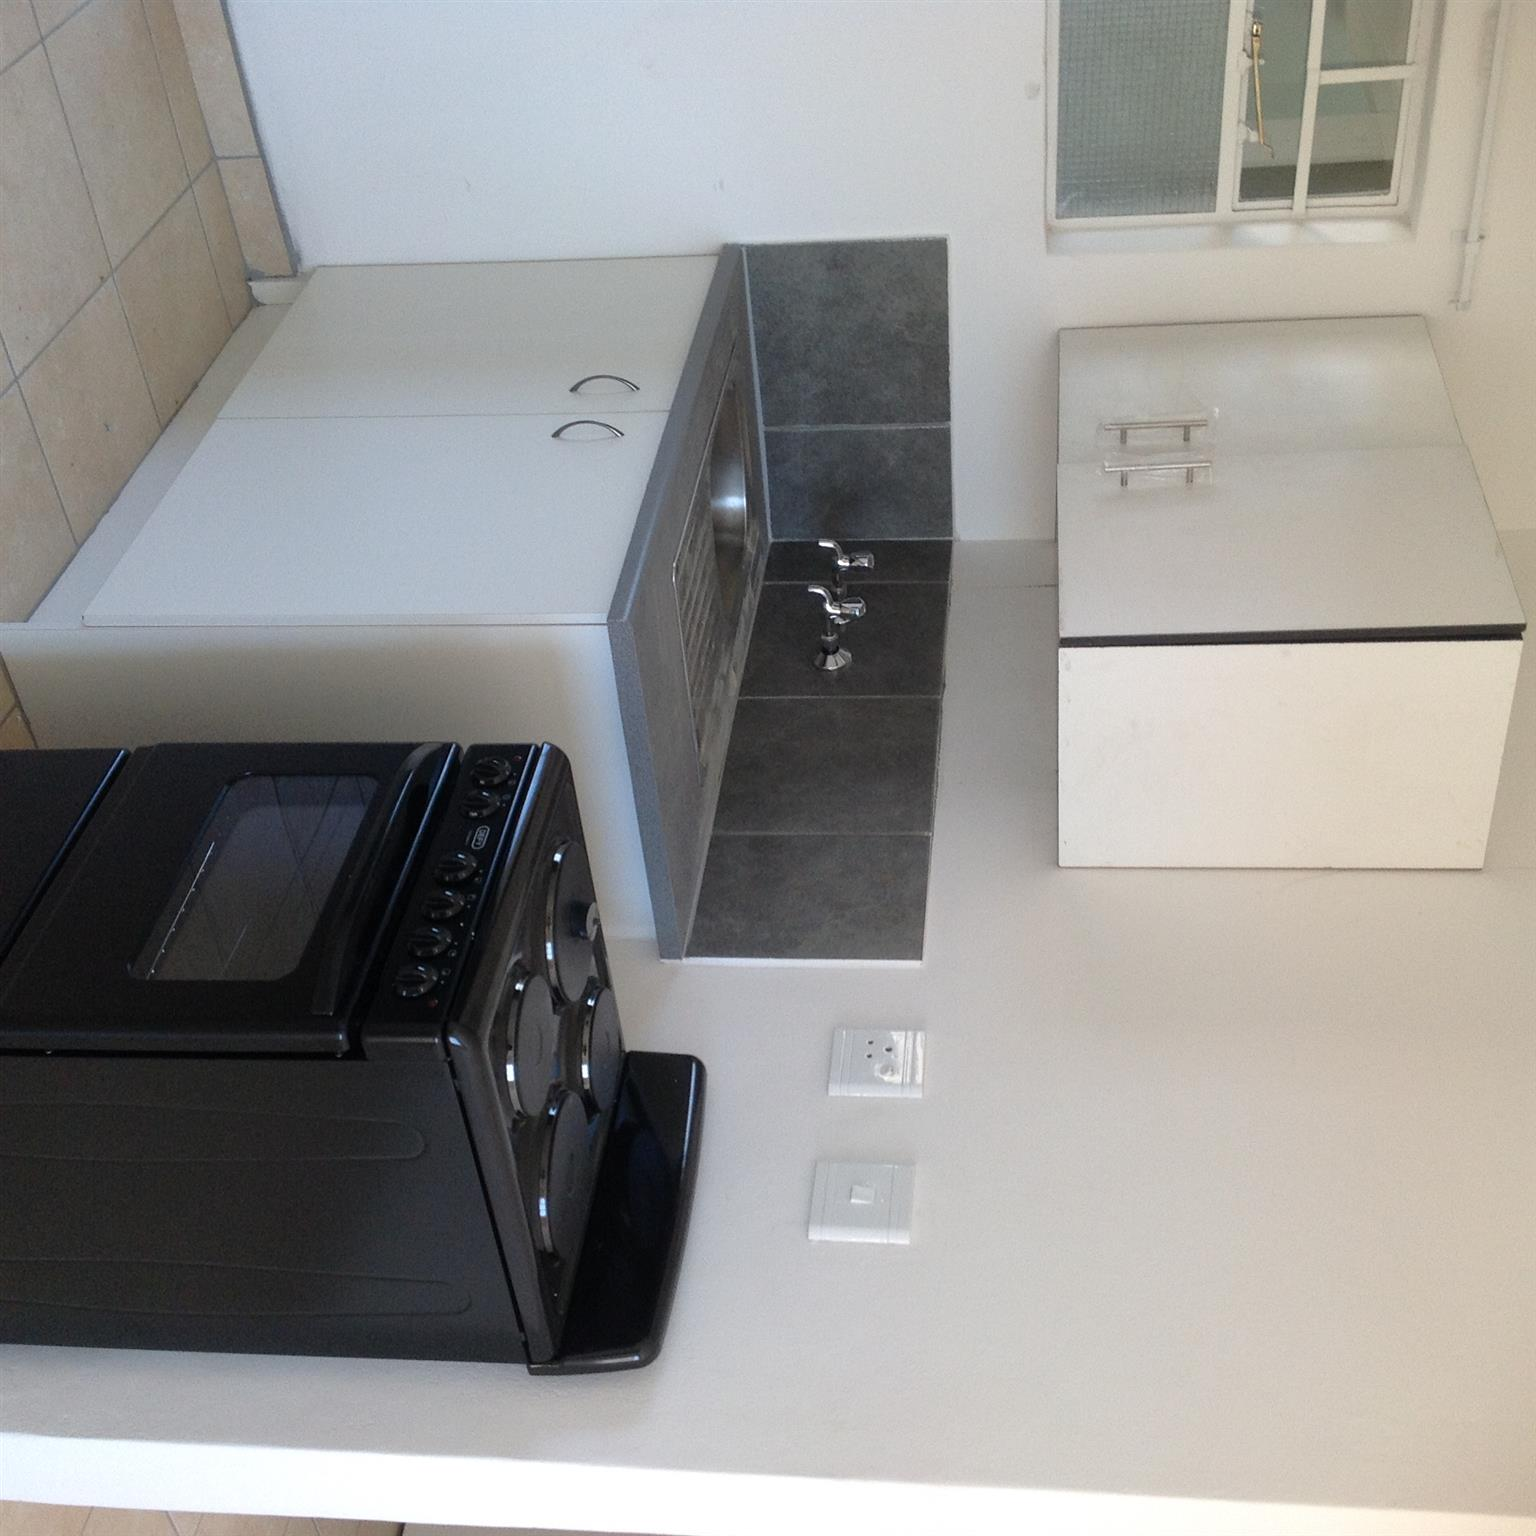 2 bedroomed appartment to let in fleurhof